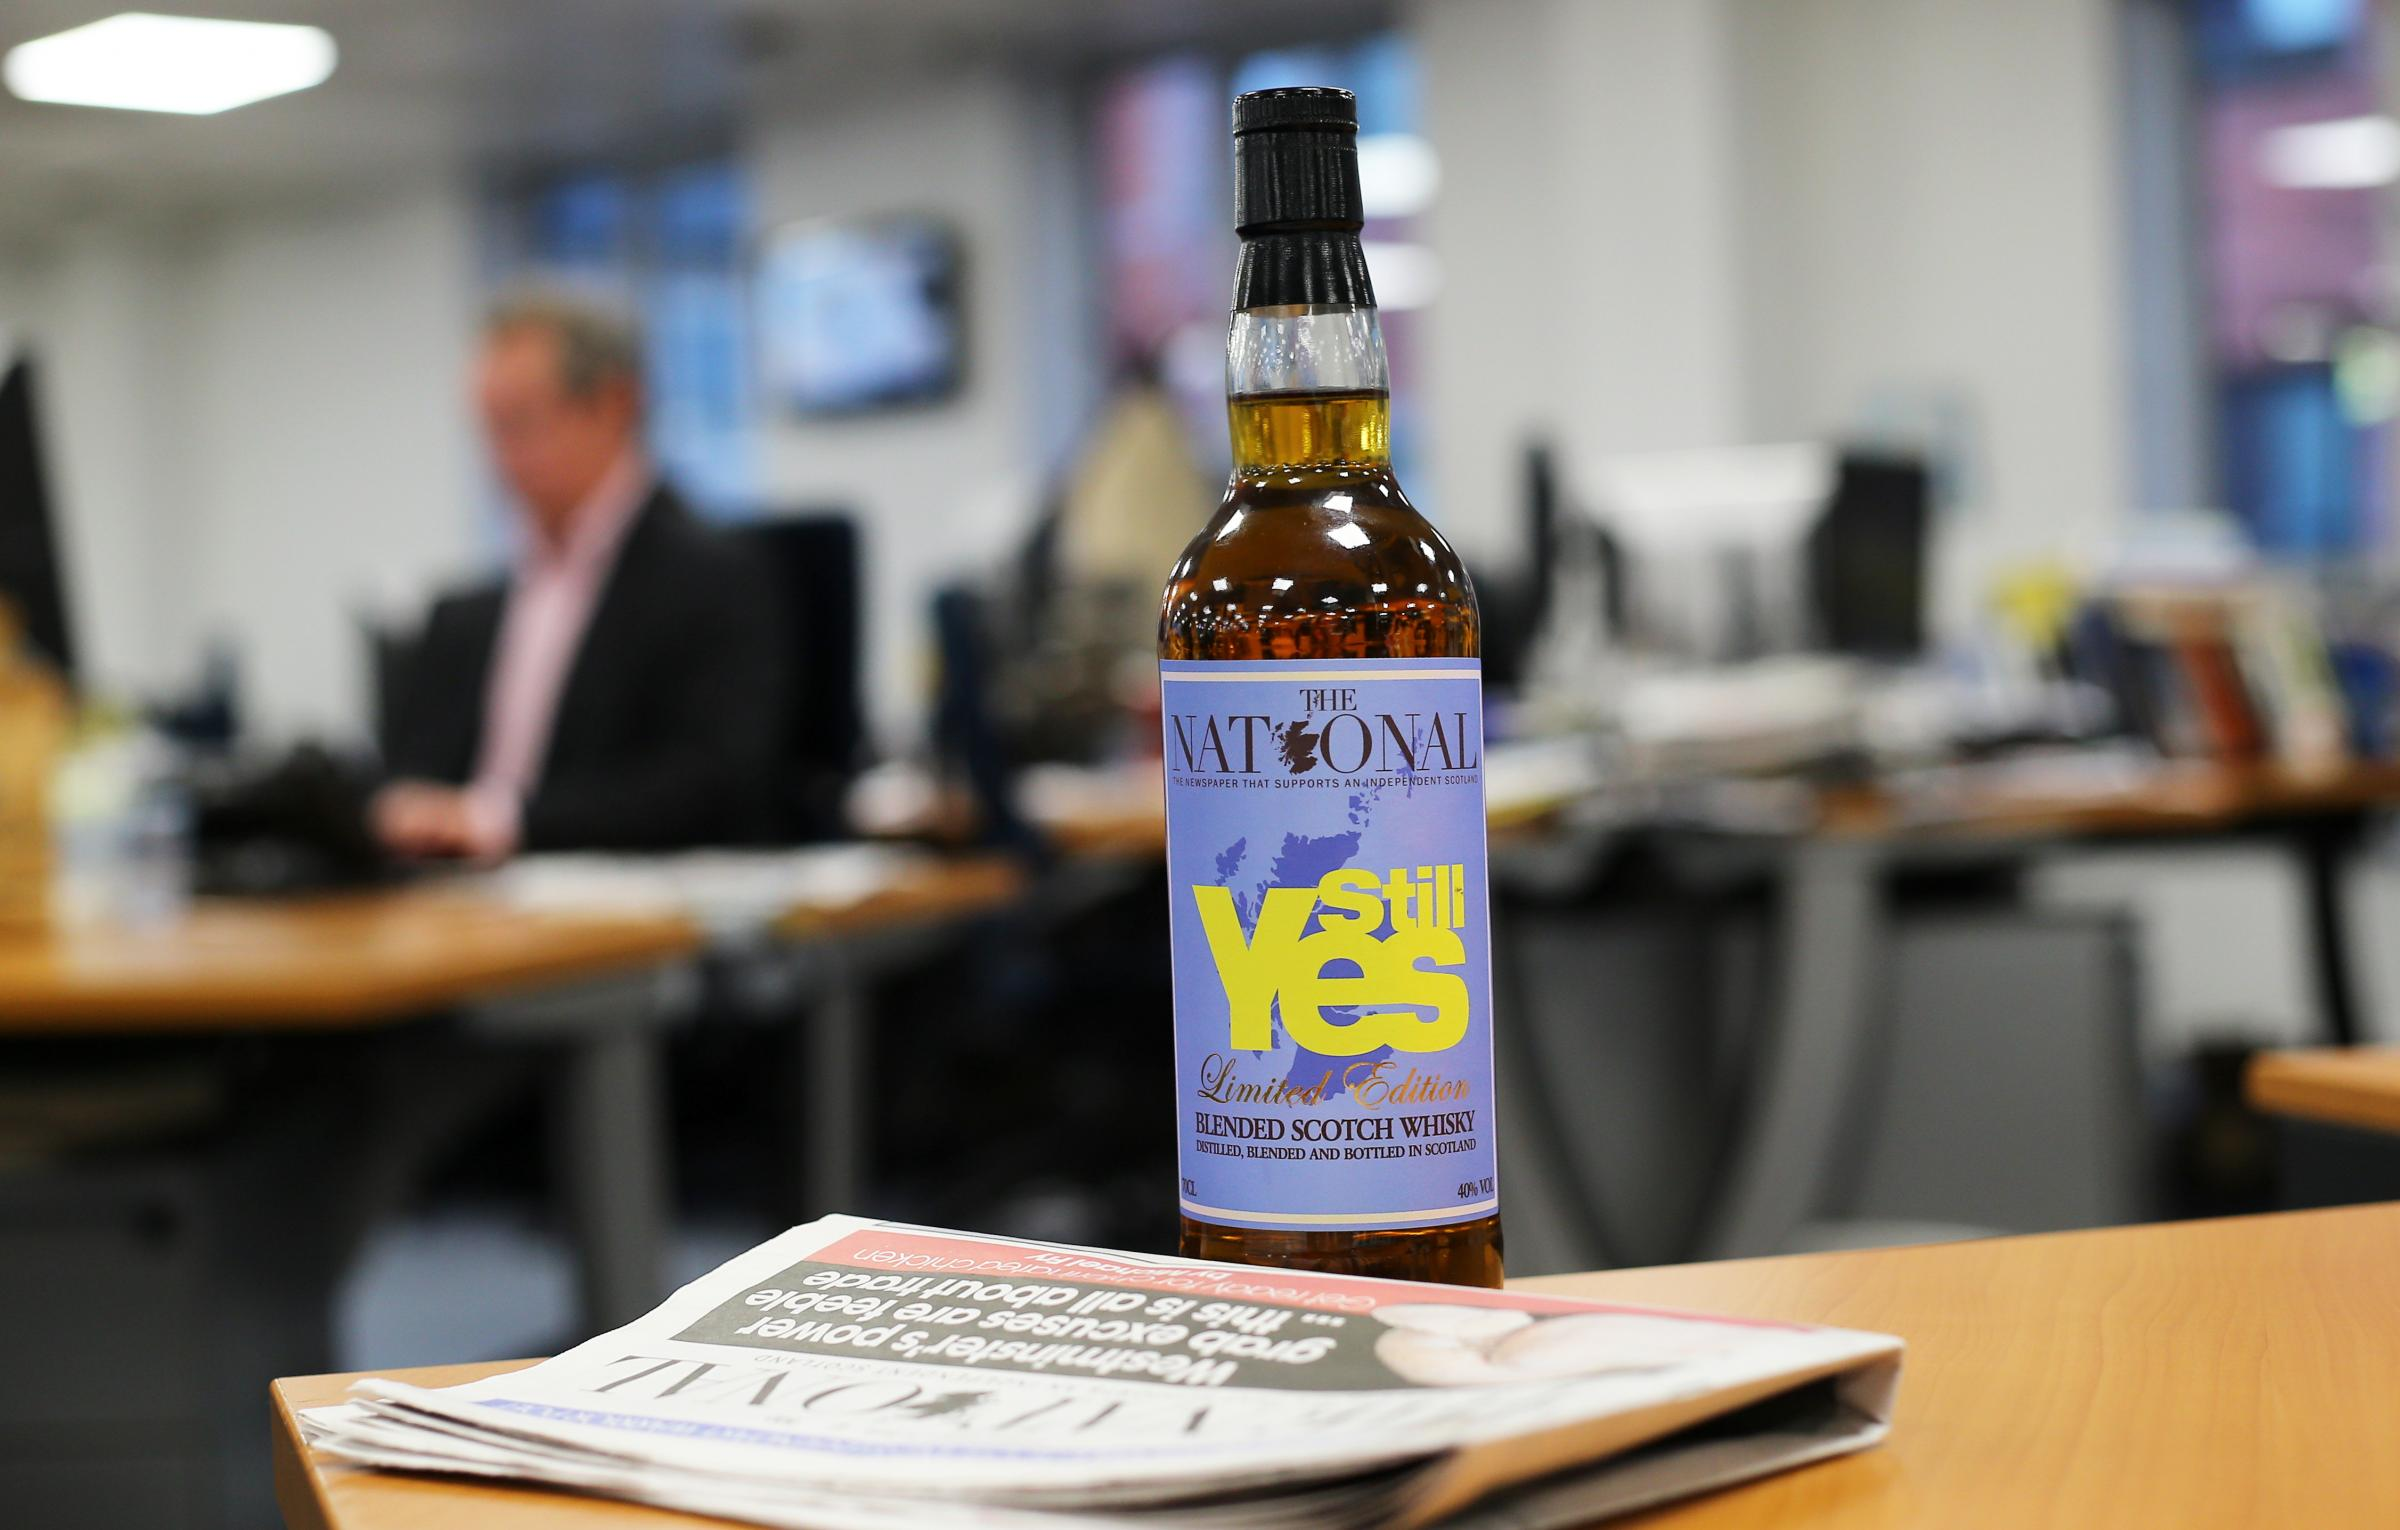 'Still Yes' whisky launched to celebrate The National's 1000th edition